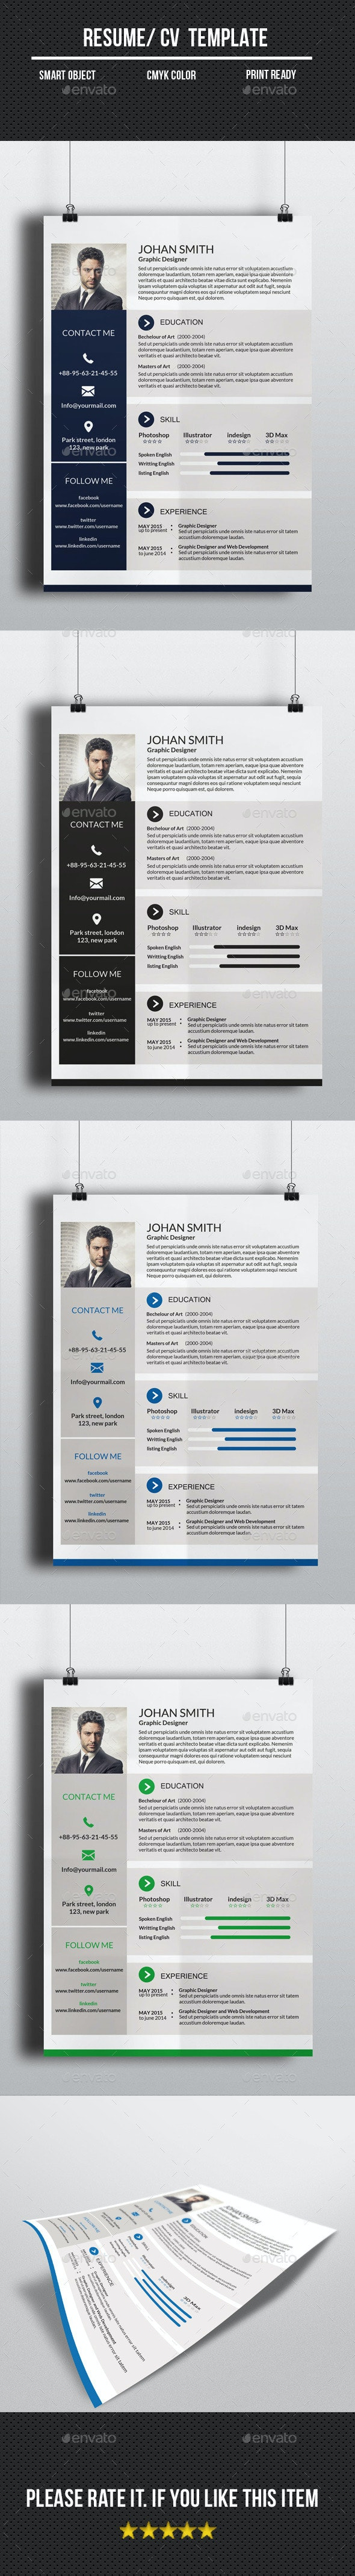 One Page Resume/CV - Resumes Stationery